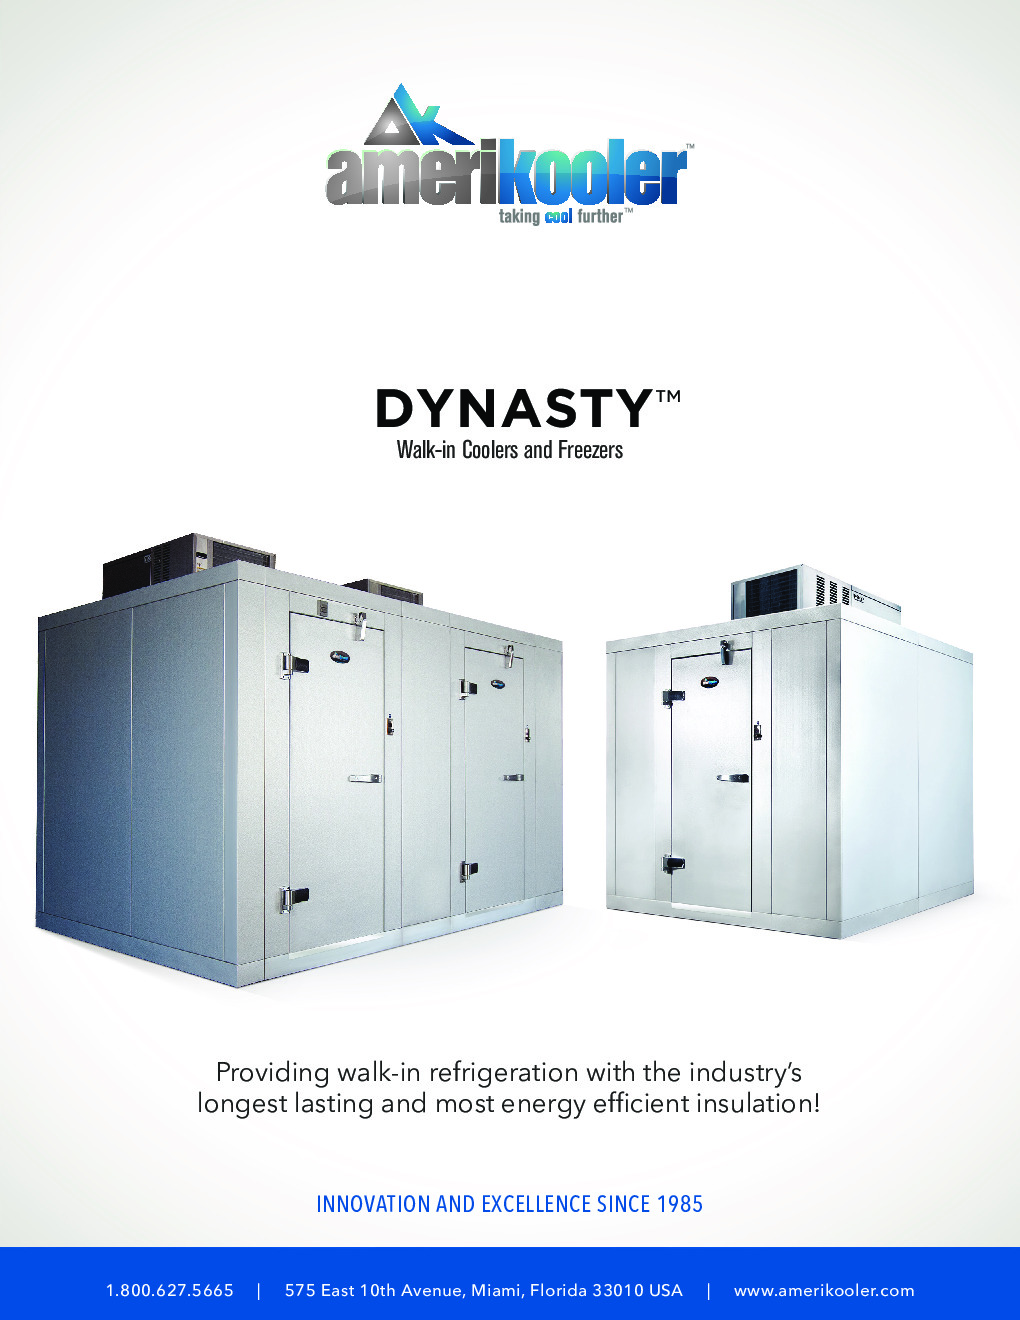 AmeriKooler DW071377N-5/8-SC 7' X 13' Walk-In Cooler, 8' L Cooler without Floor and 5' L Freezer, Self Contained